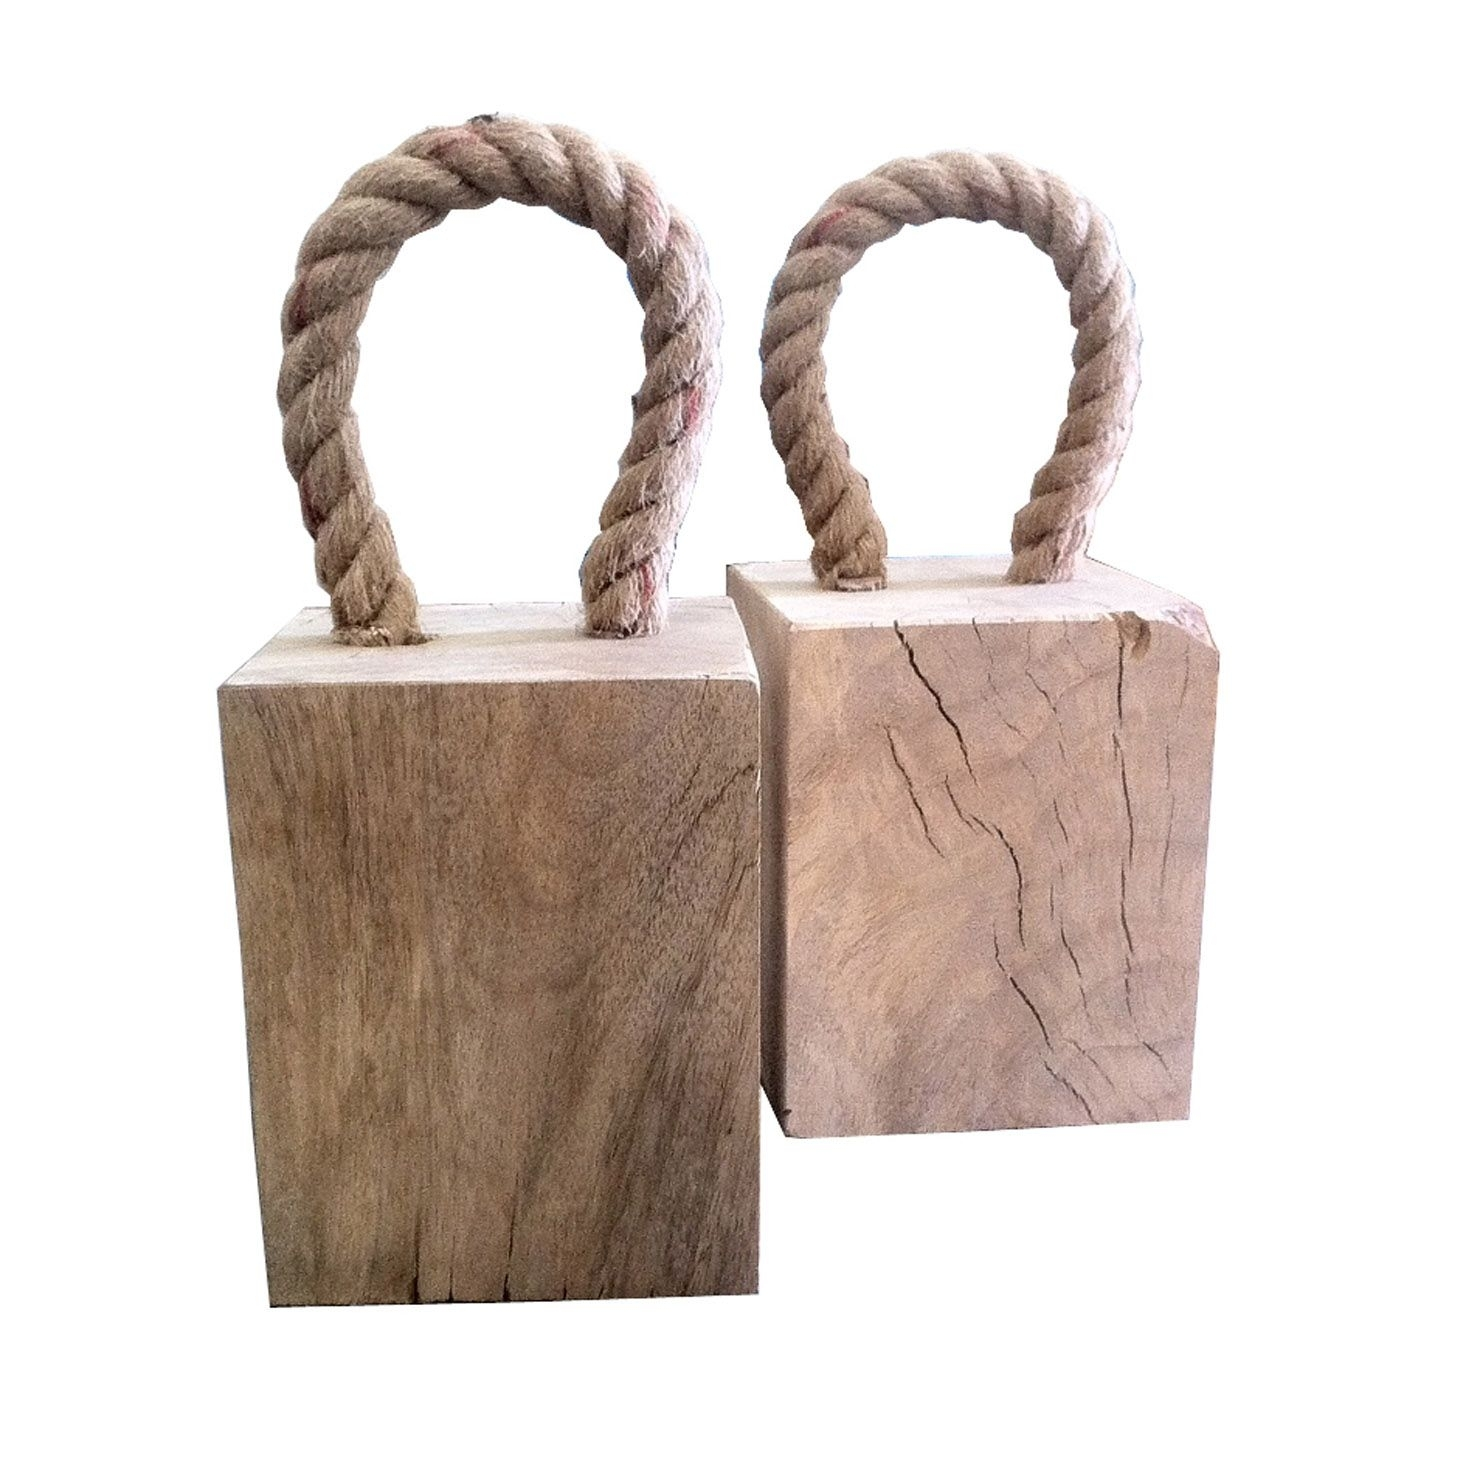 Wooden Door Stops Ideas On Foter